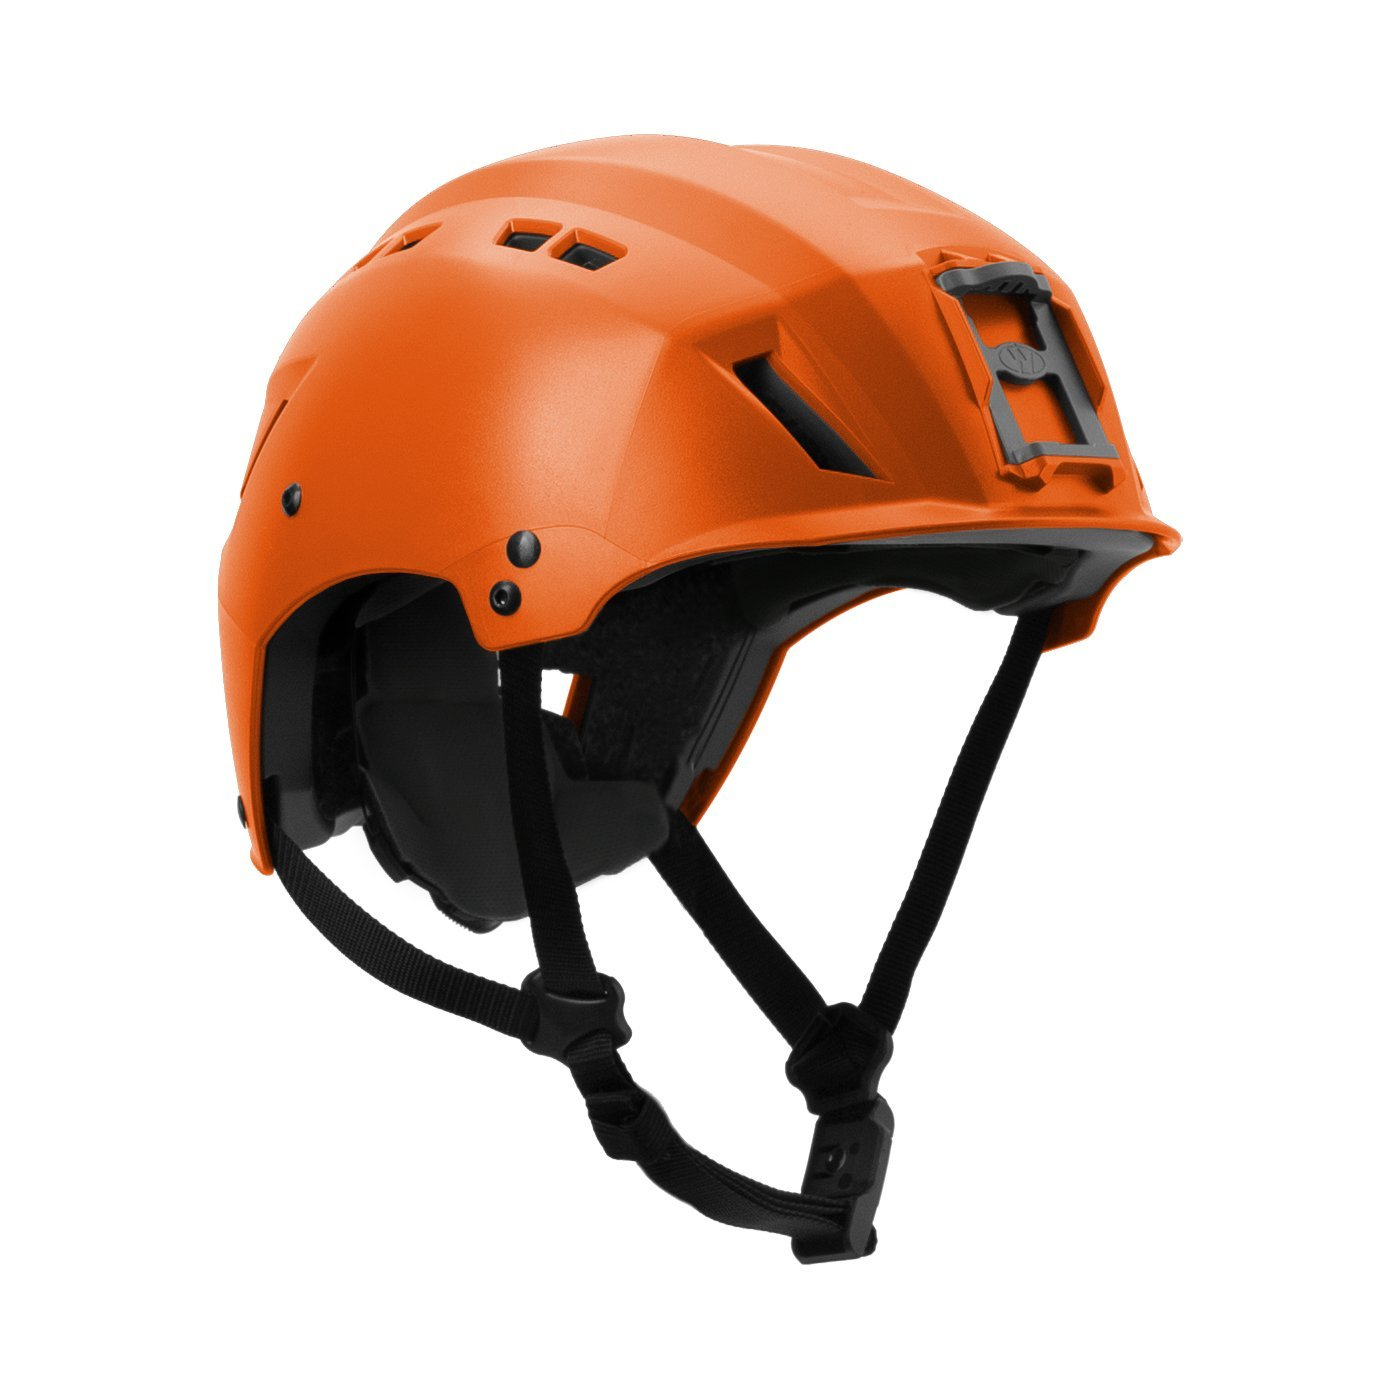 Team Wendy Helm EXFIL® SAR Backcountry Orange